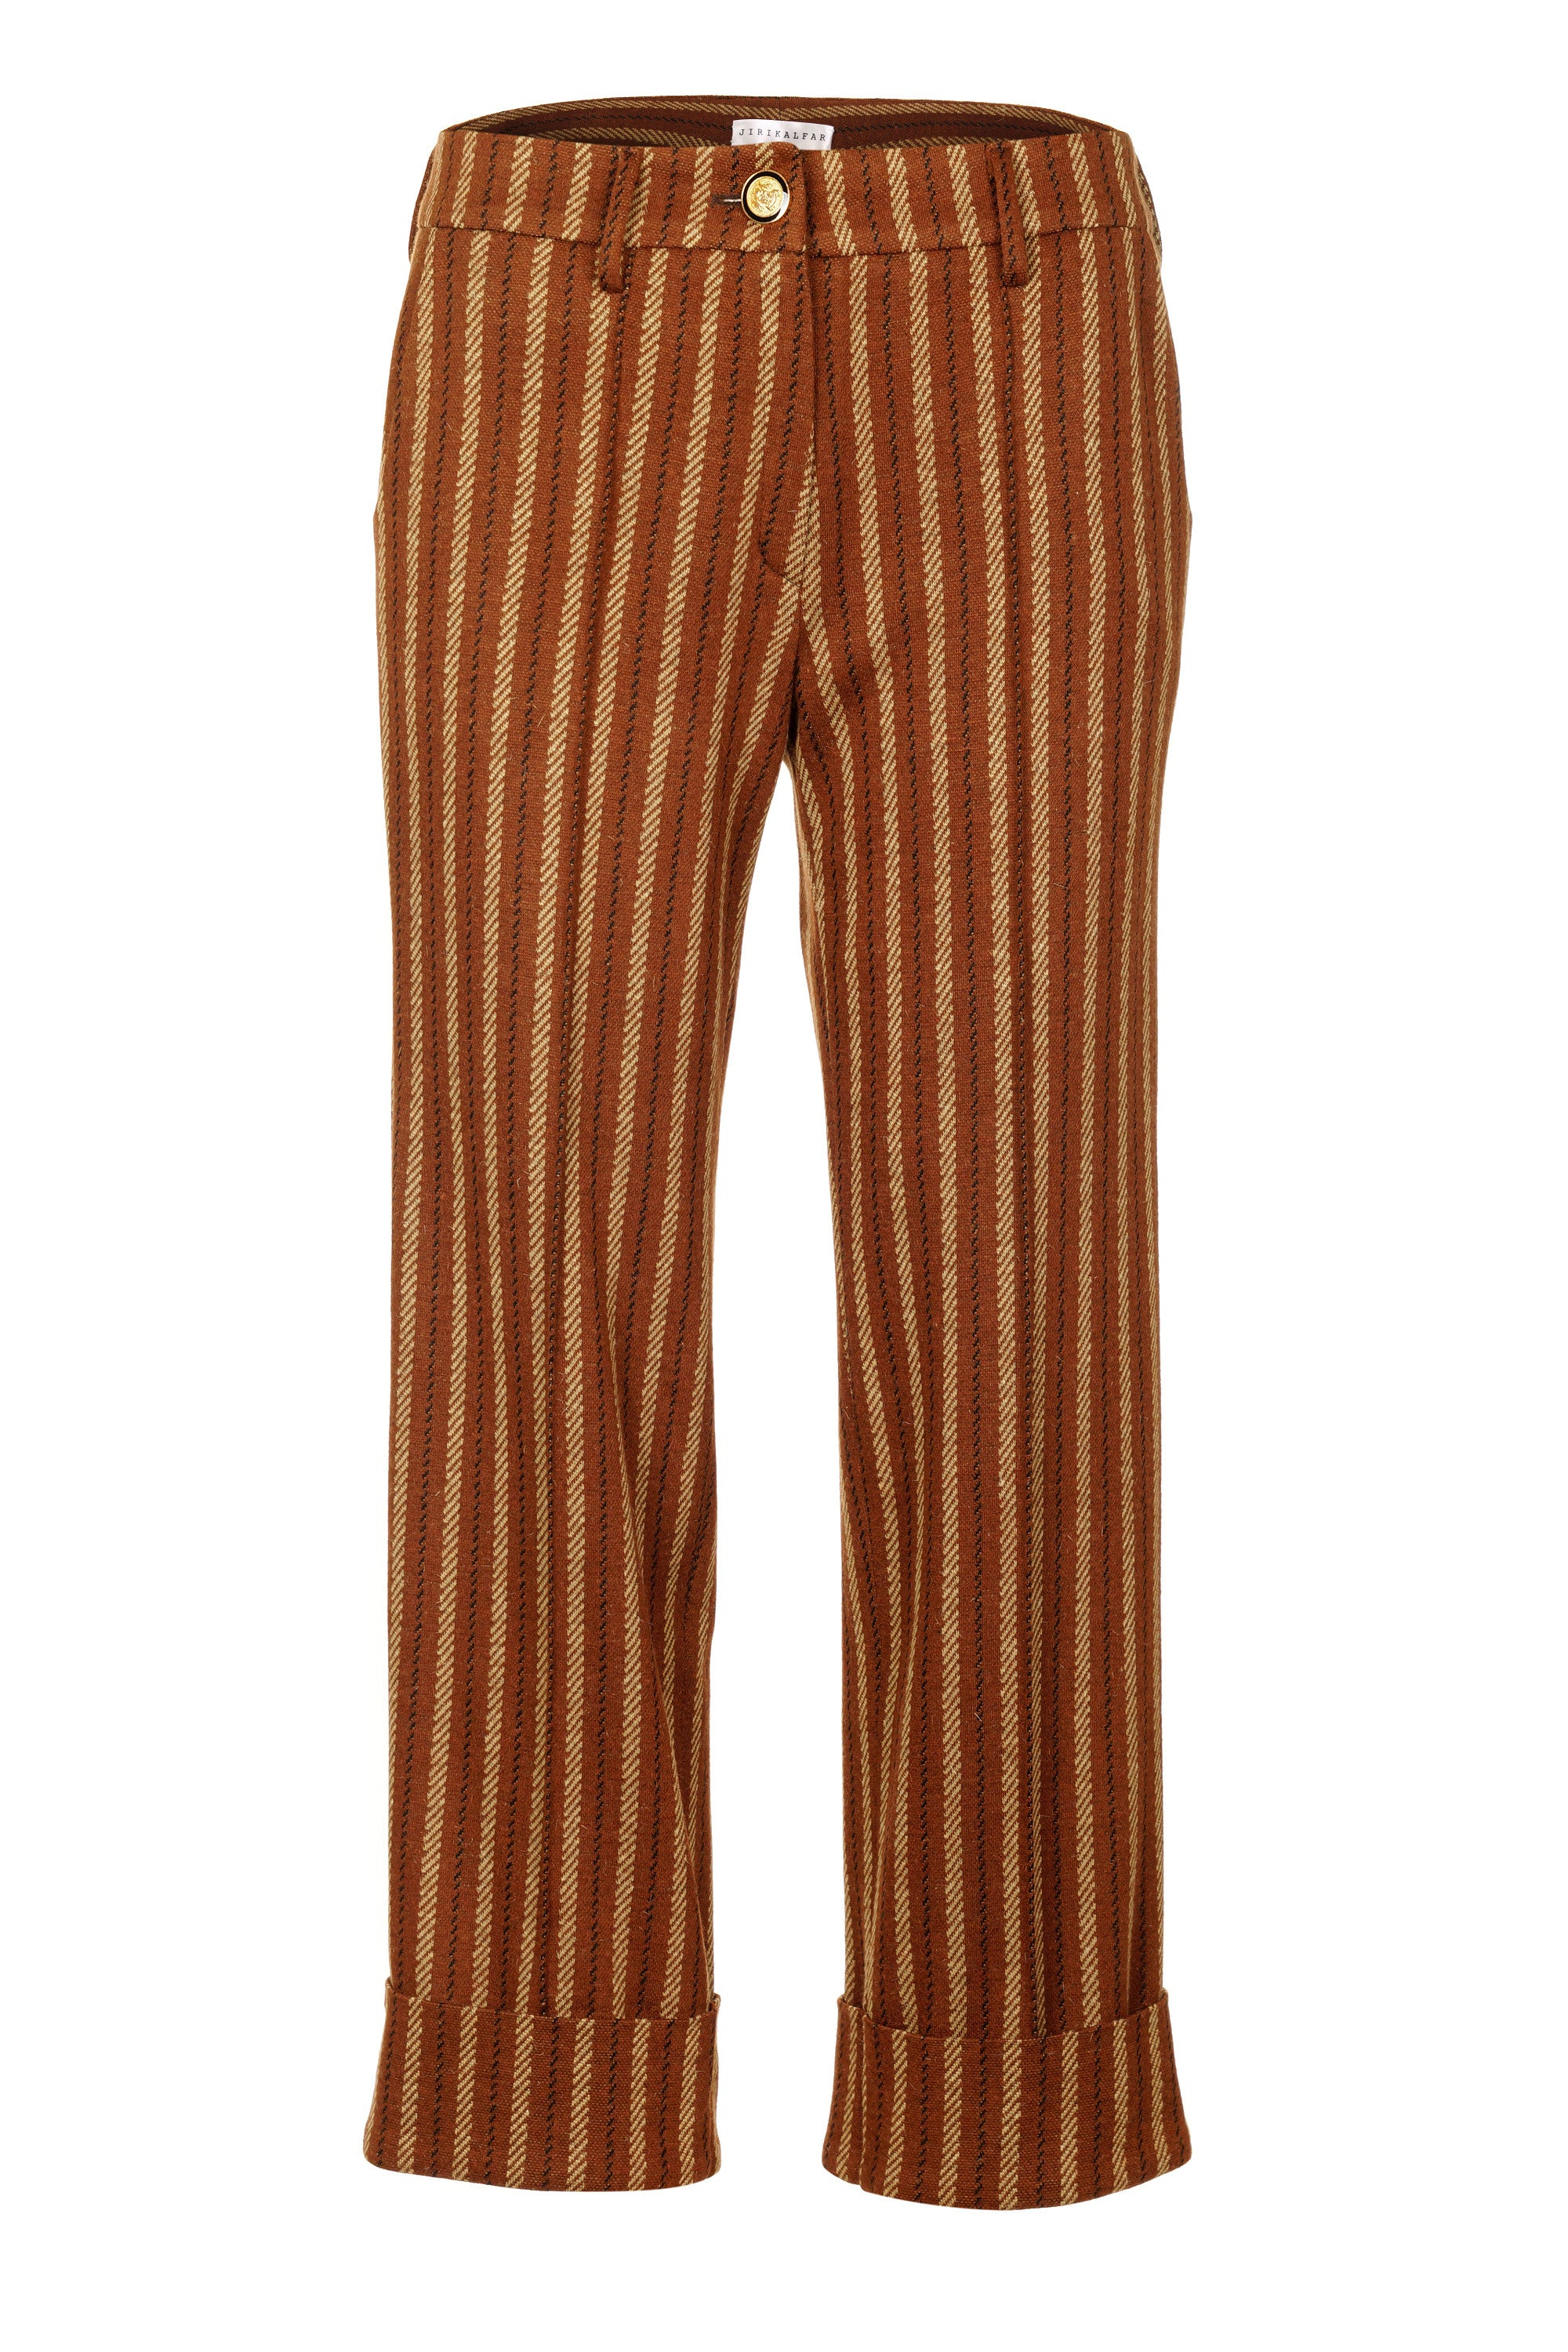 BROWN STRIPES TROUSERS